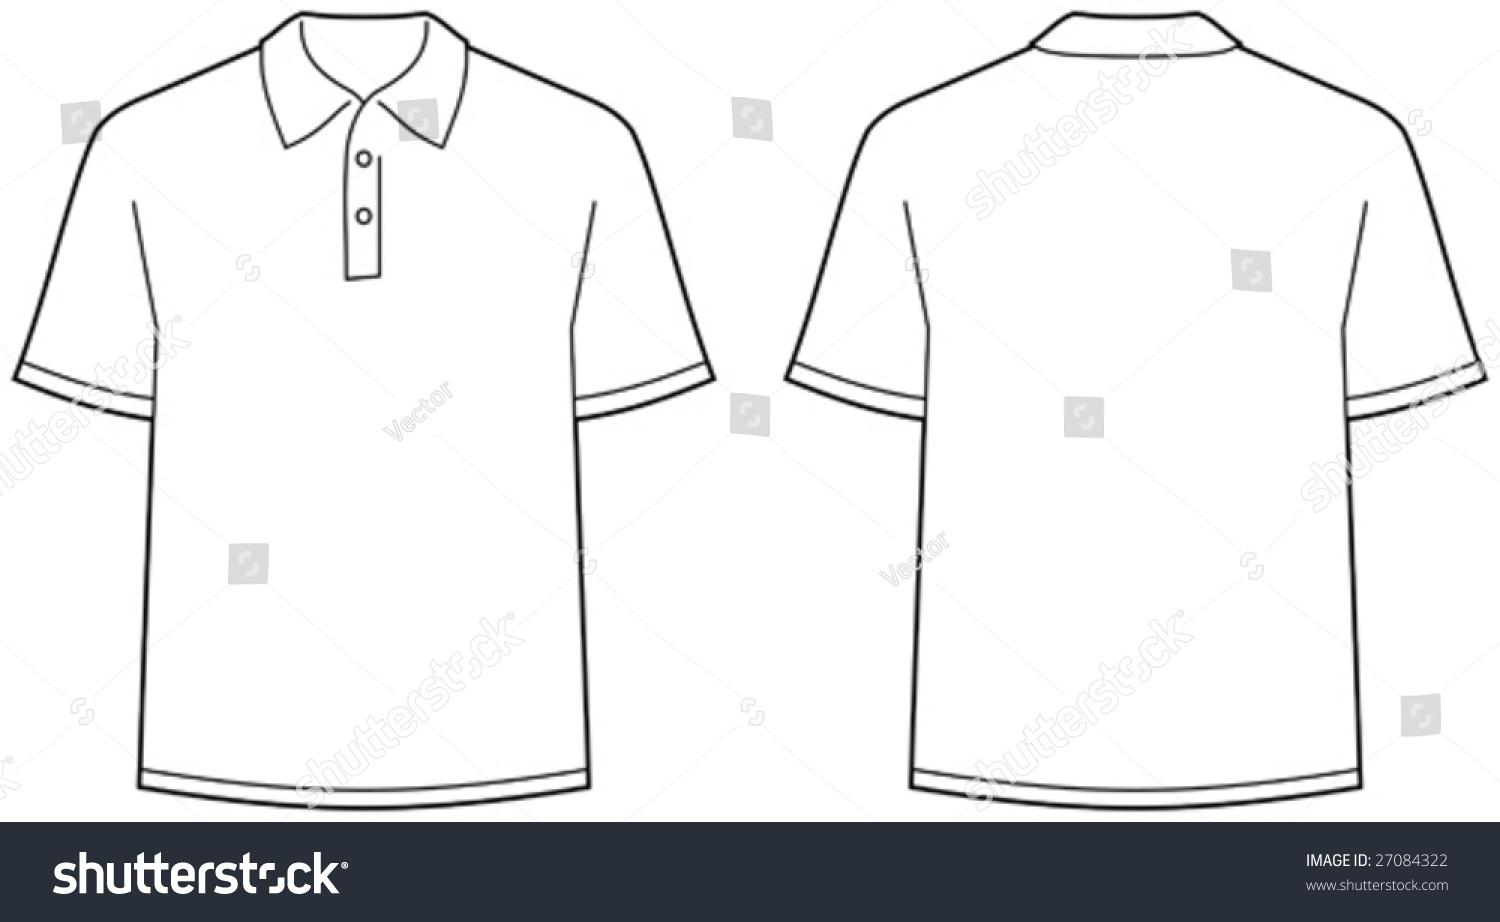 Royalty Free Polo Shirt Front And Back View 27084322 Stock